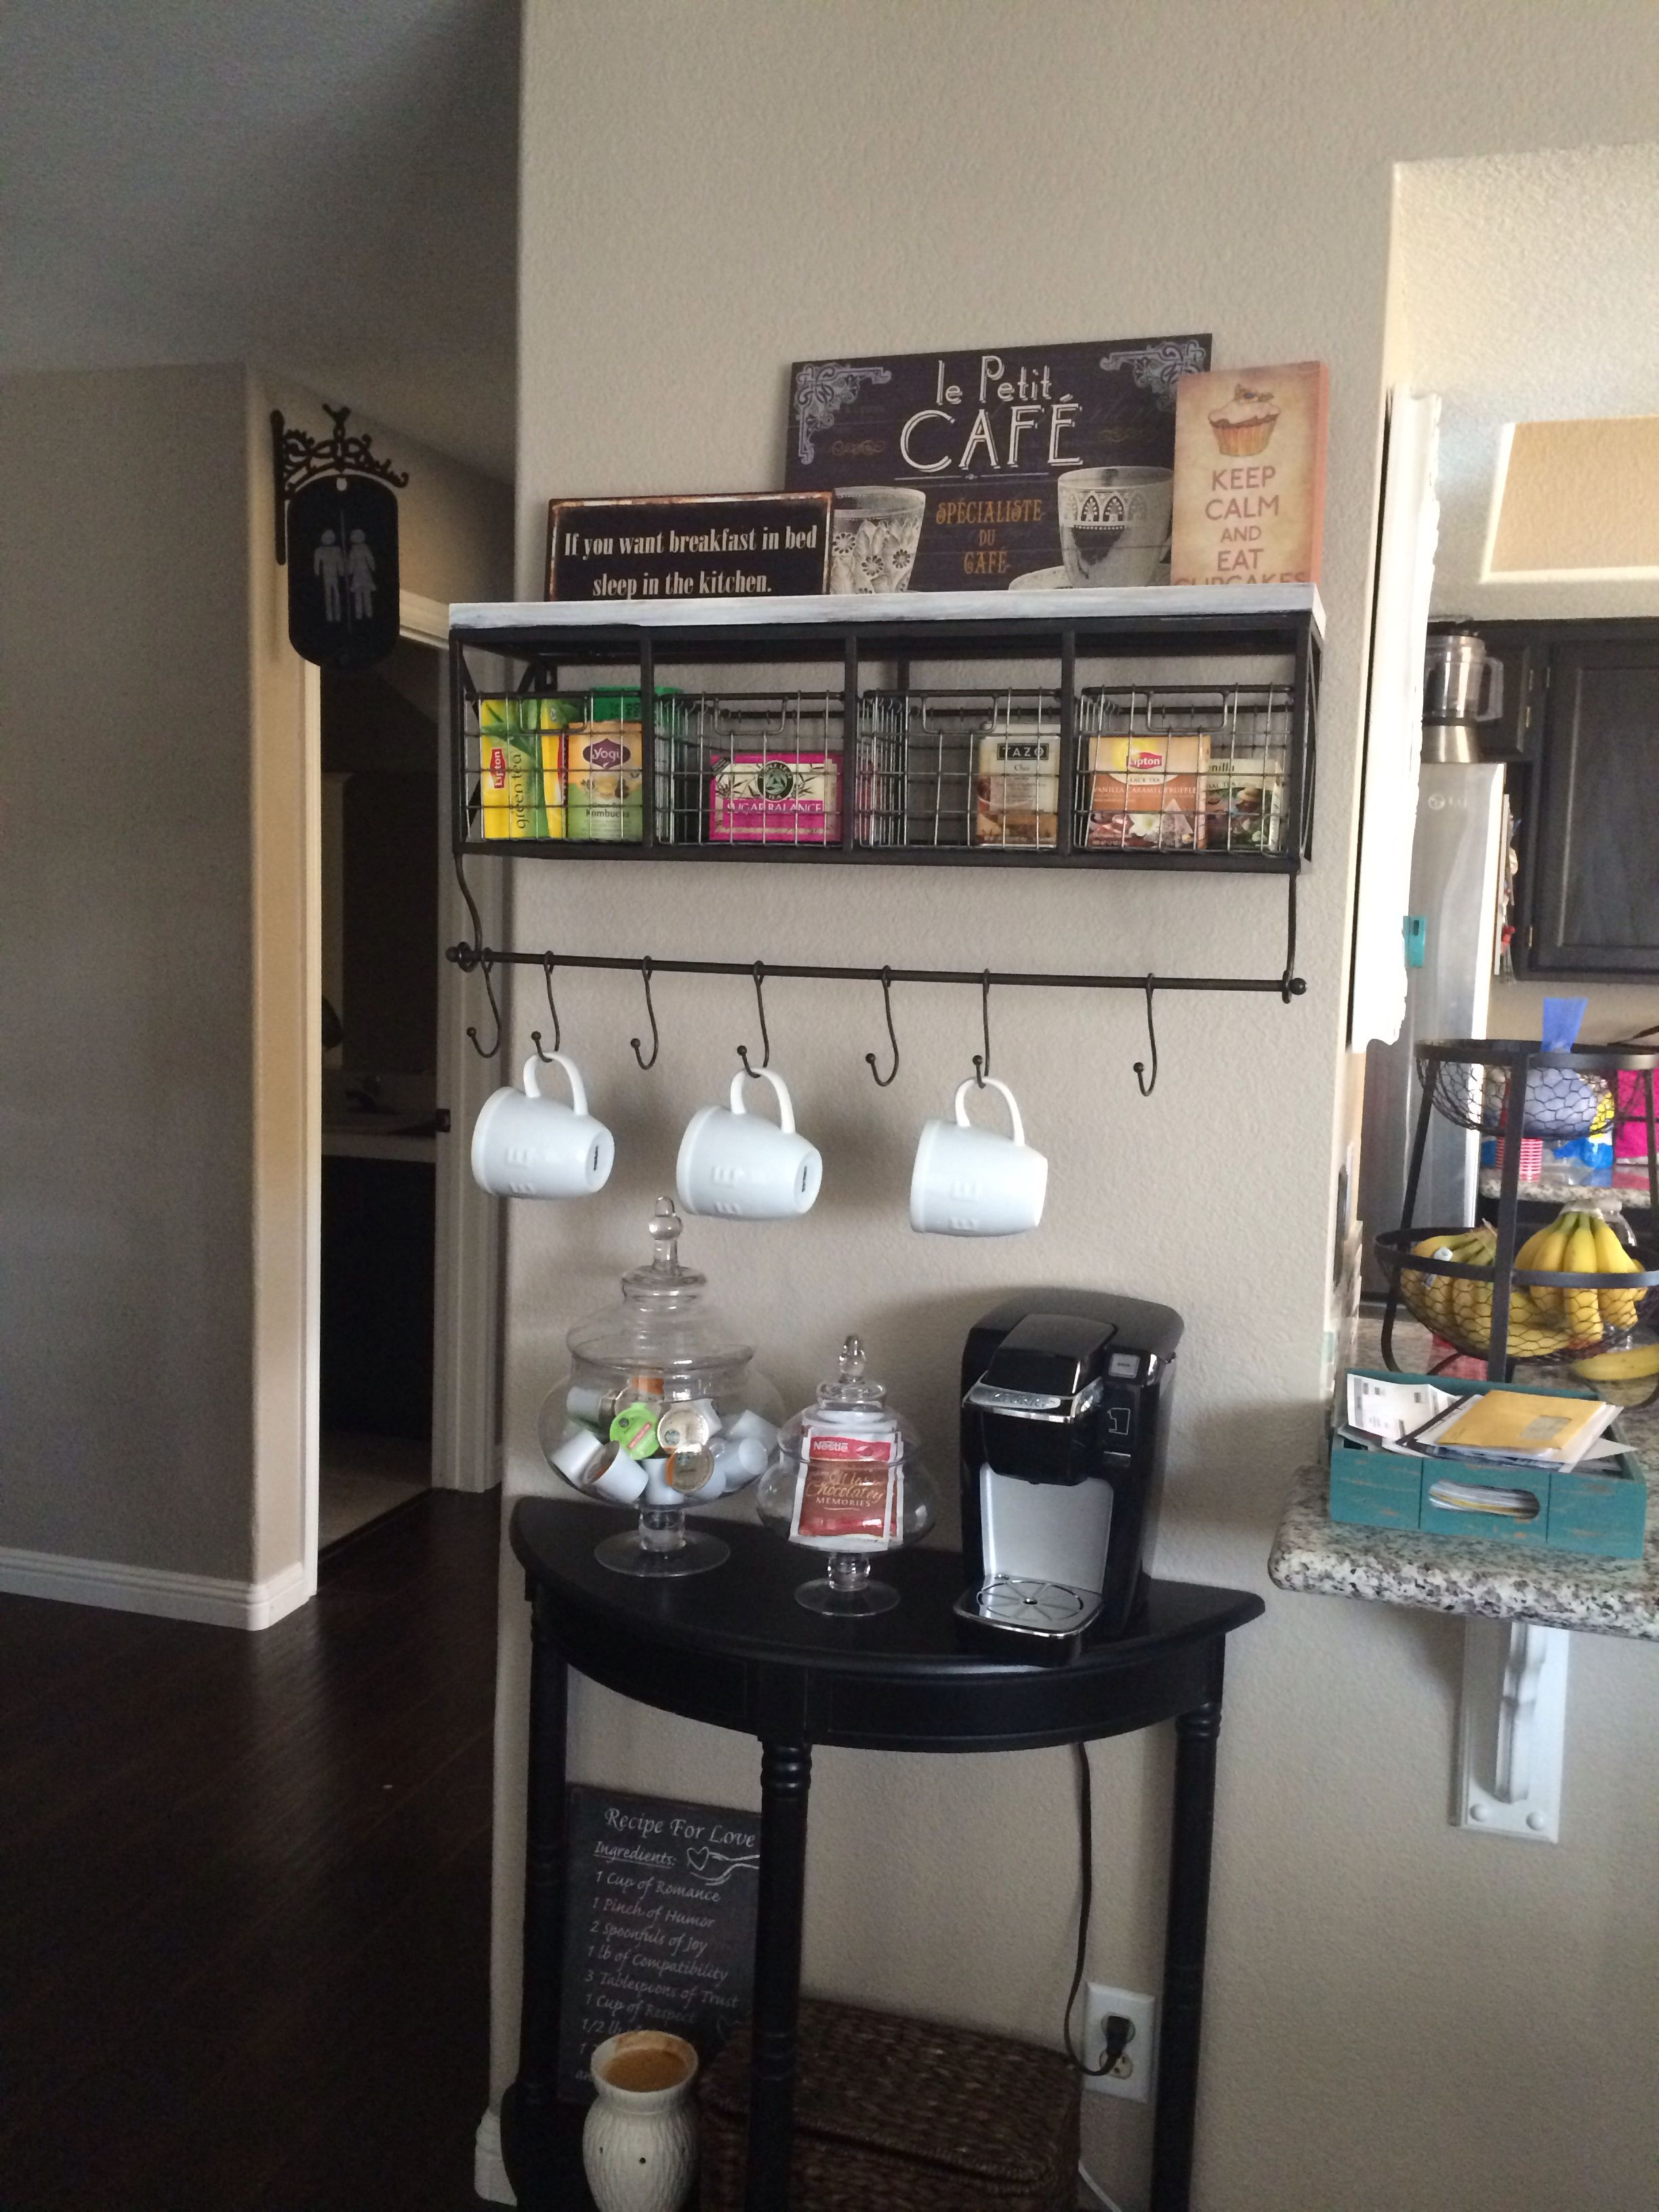 Coffee and Tea station in the home, i really really like